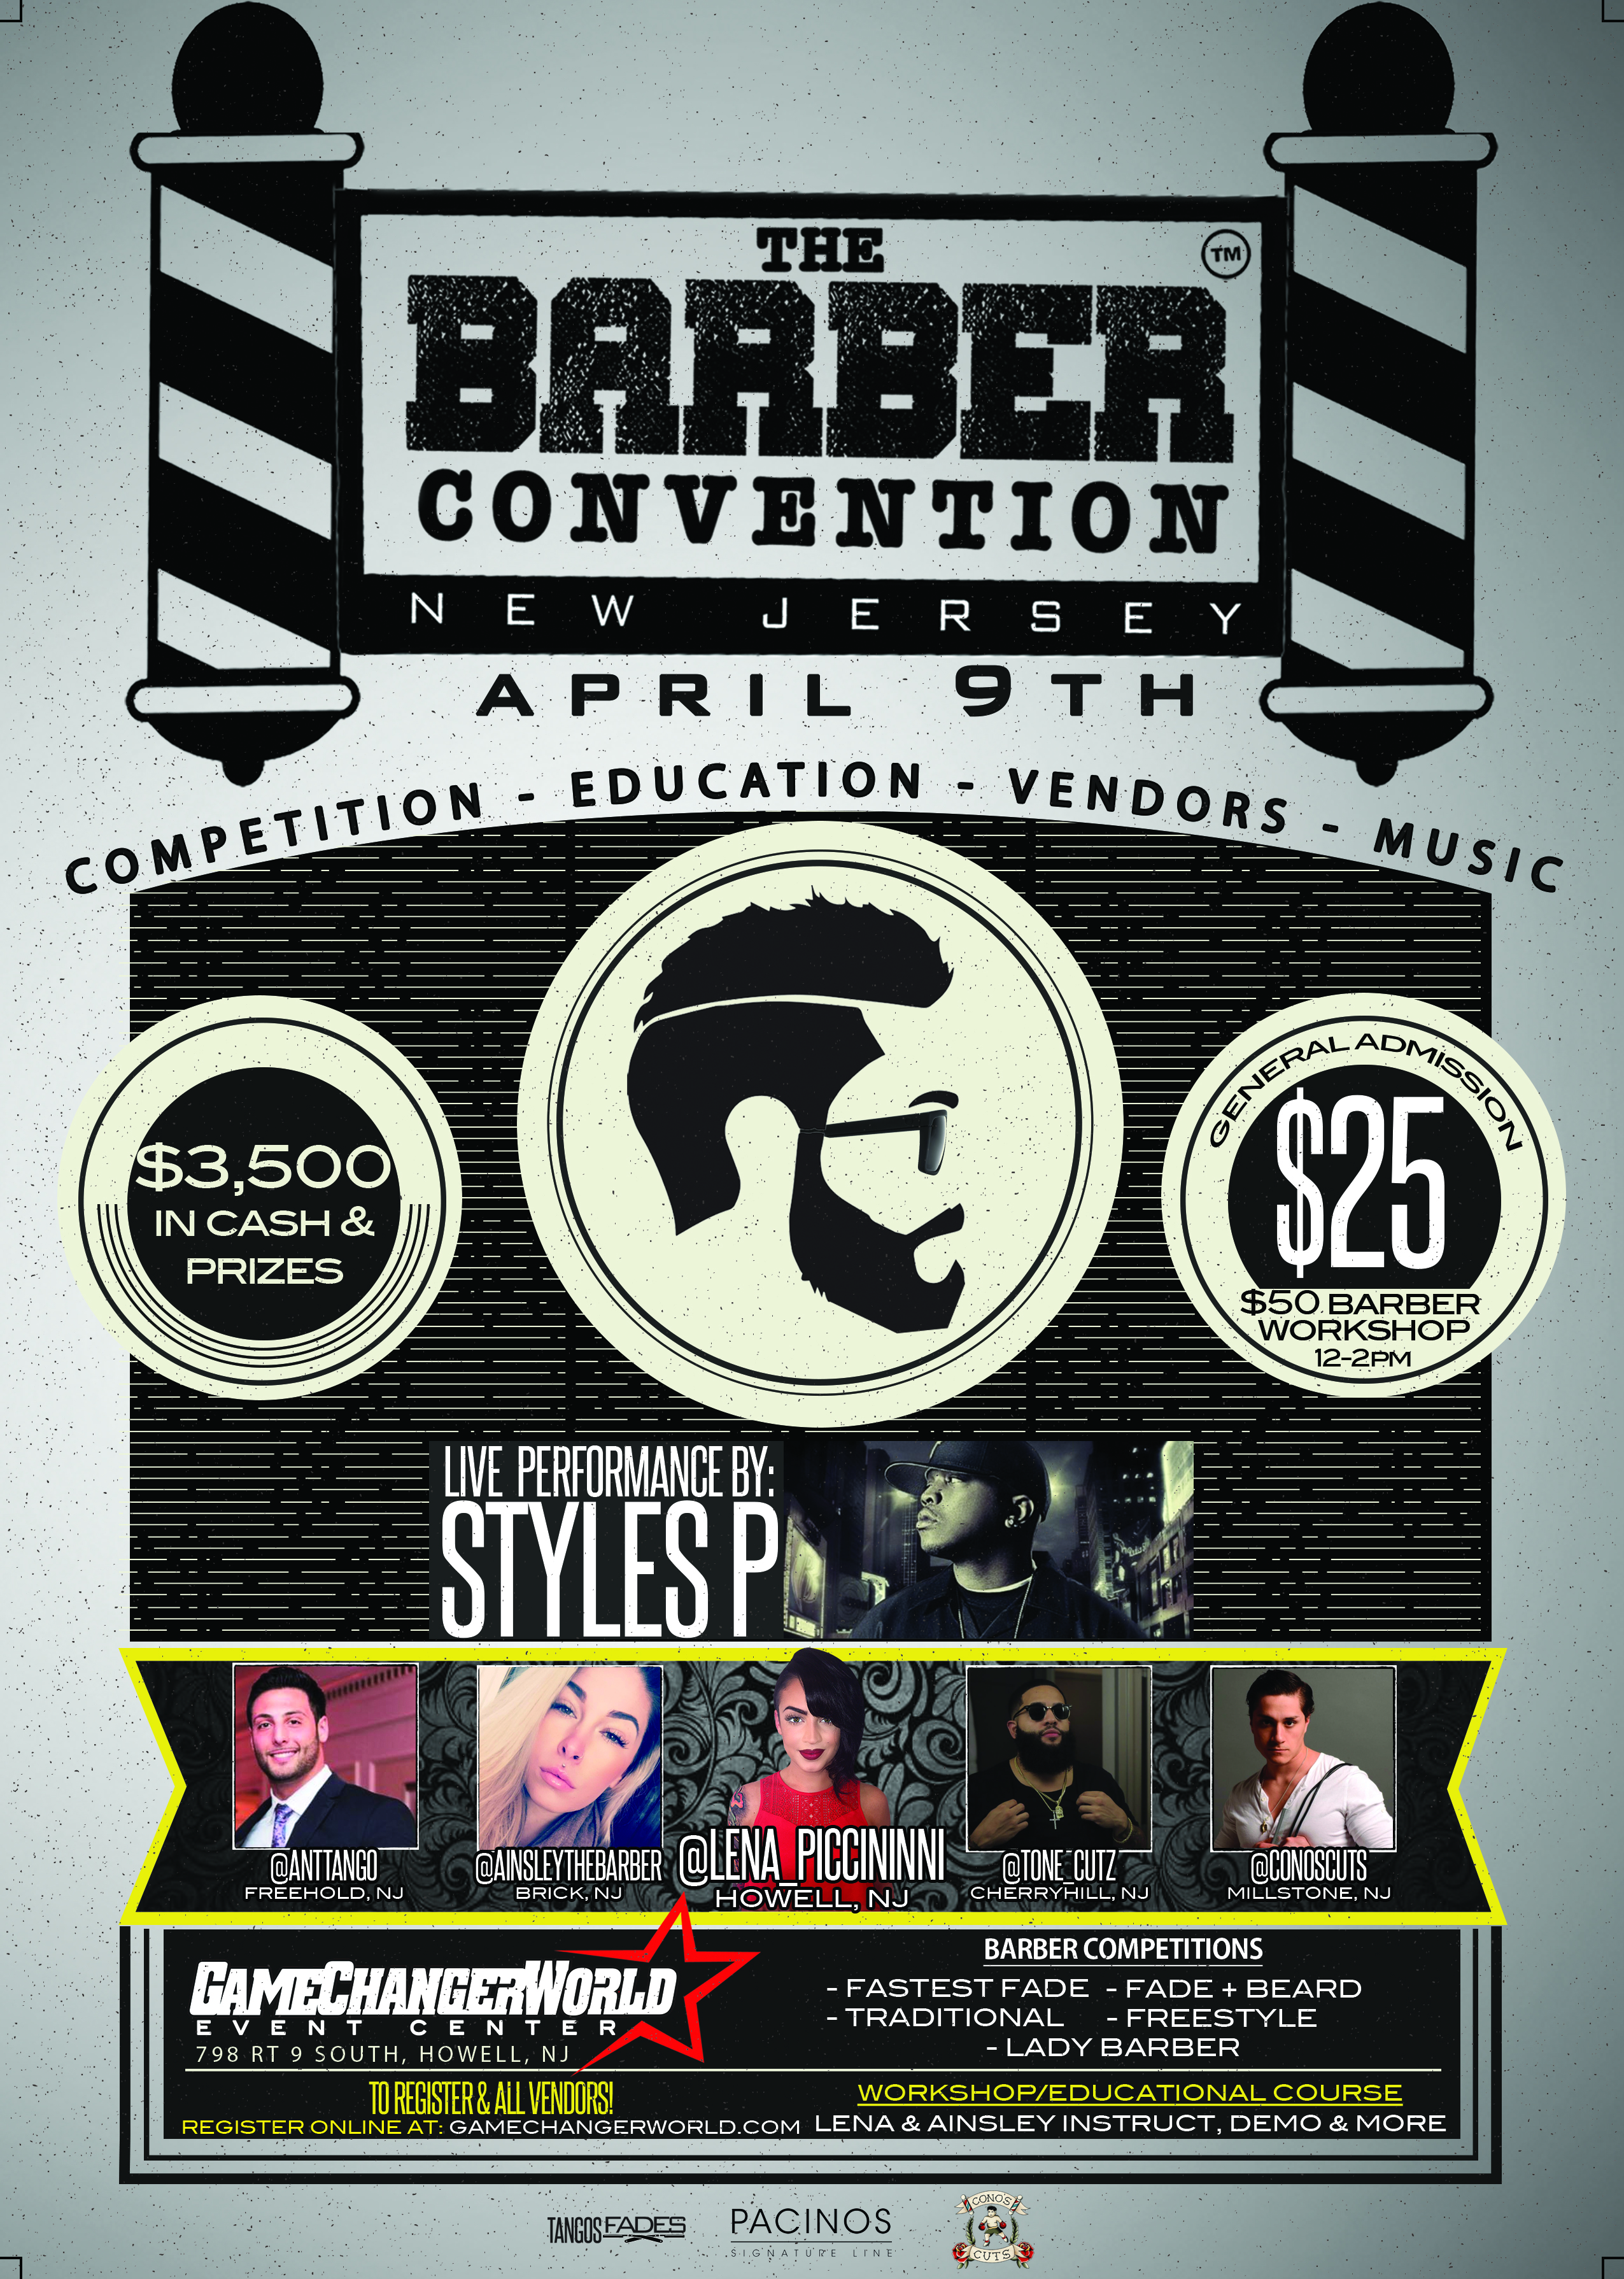 The Barber Convention (Vendors & Contests)